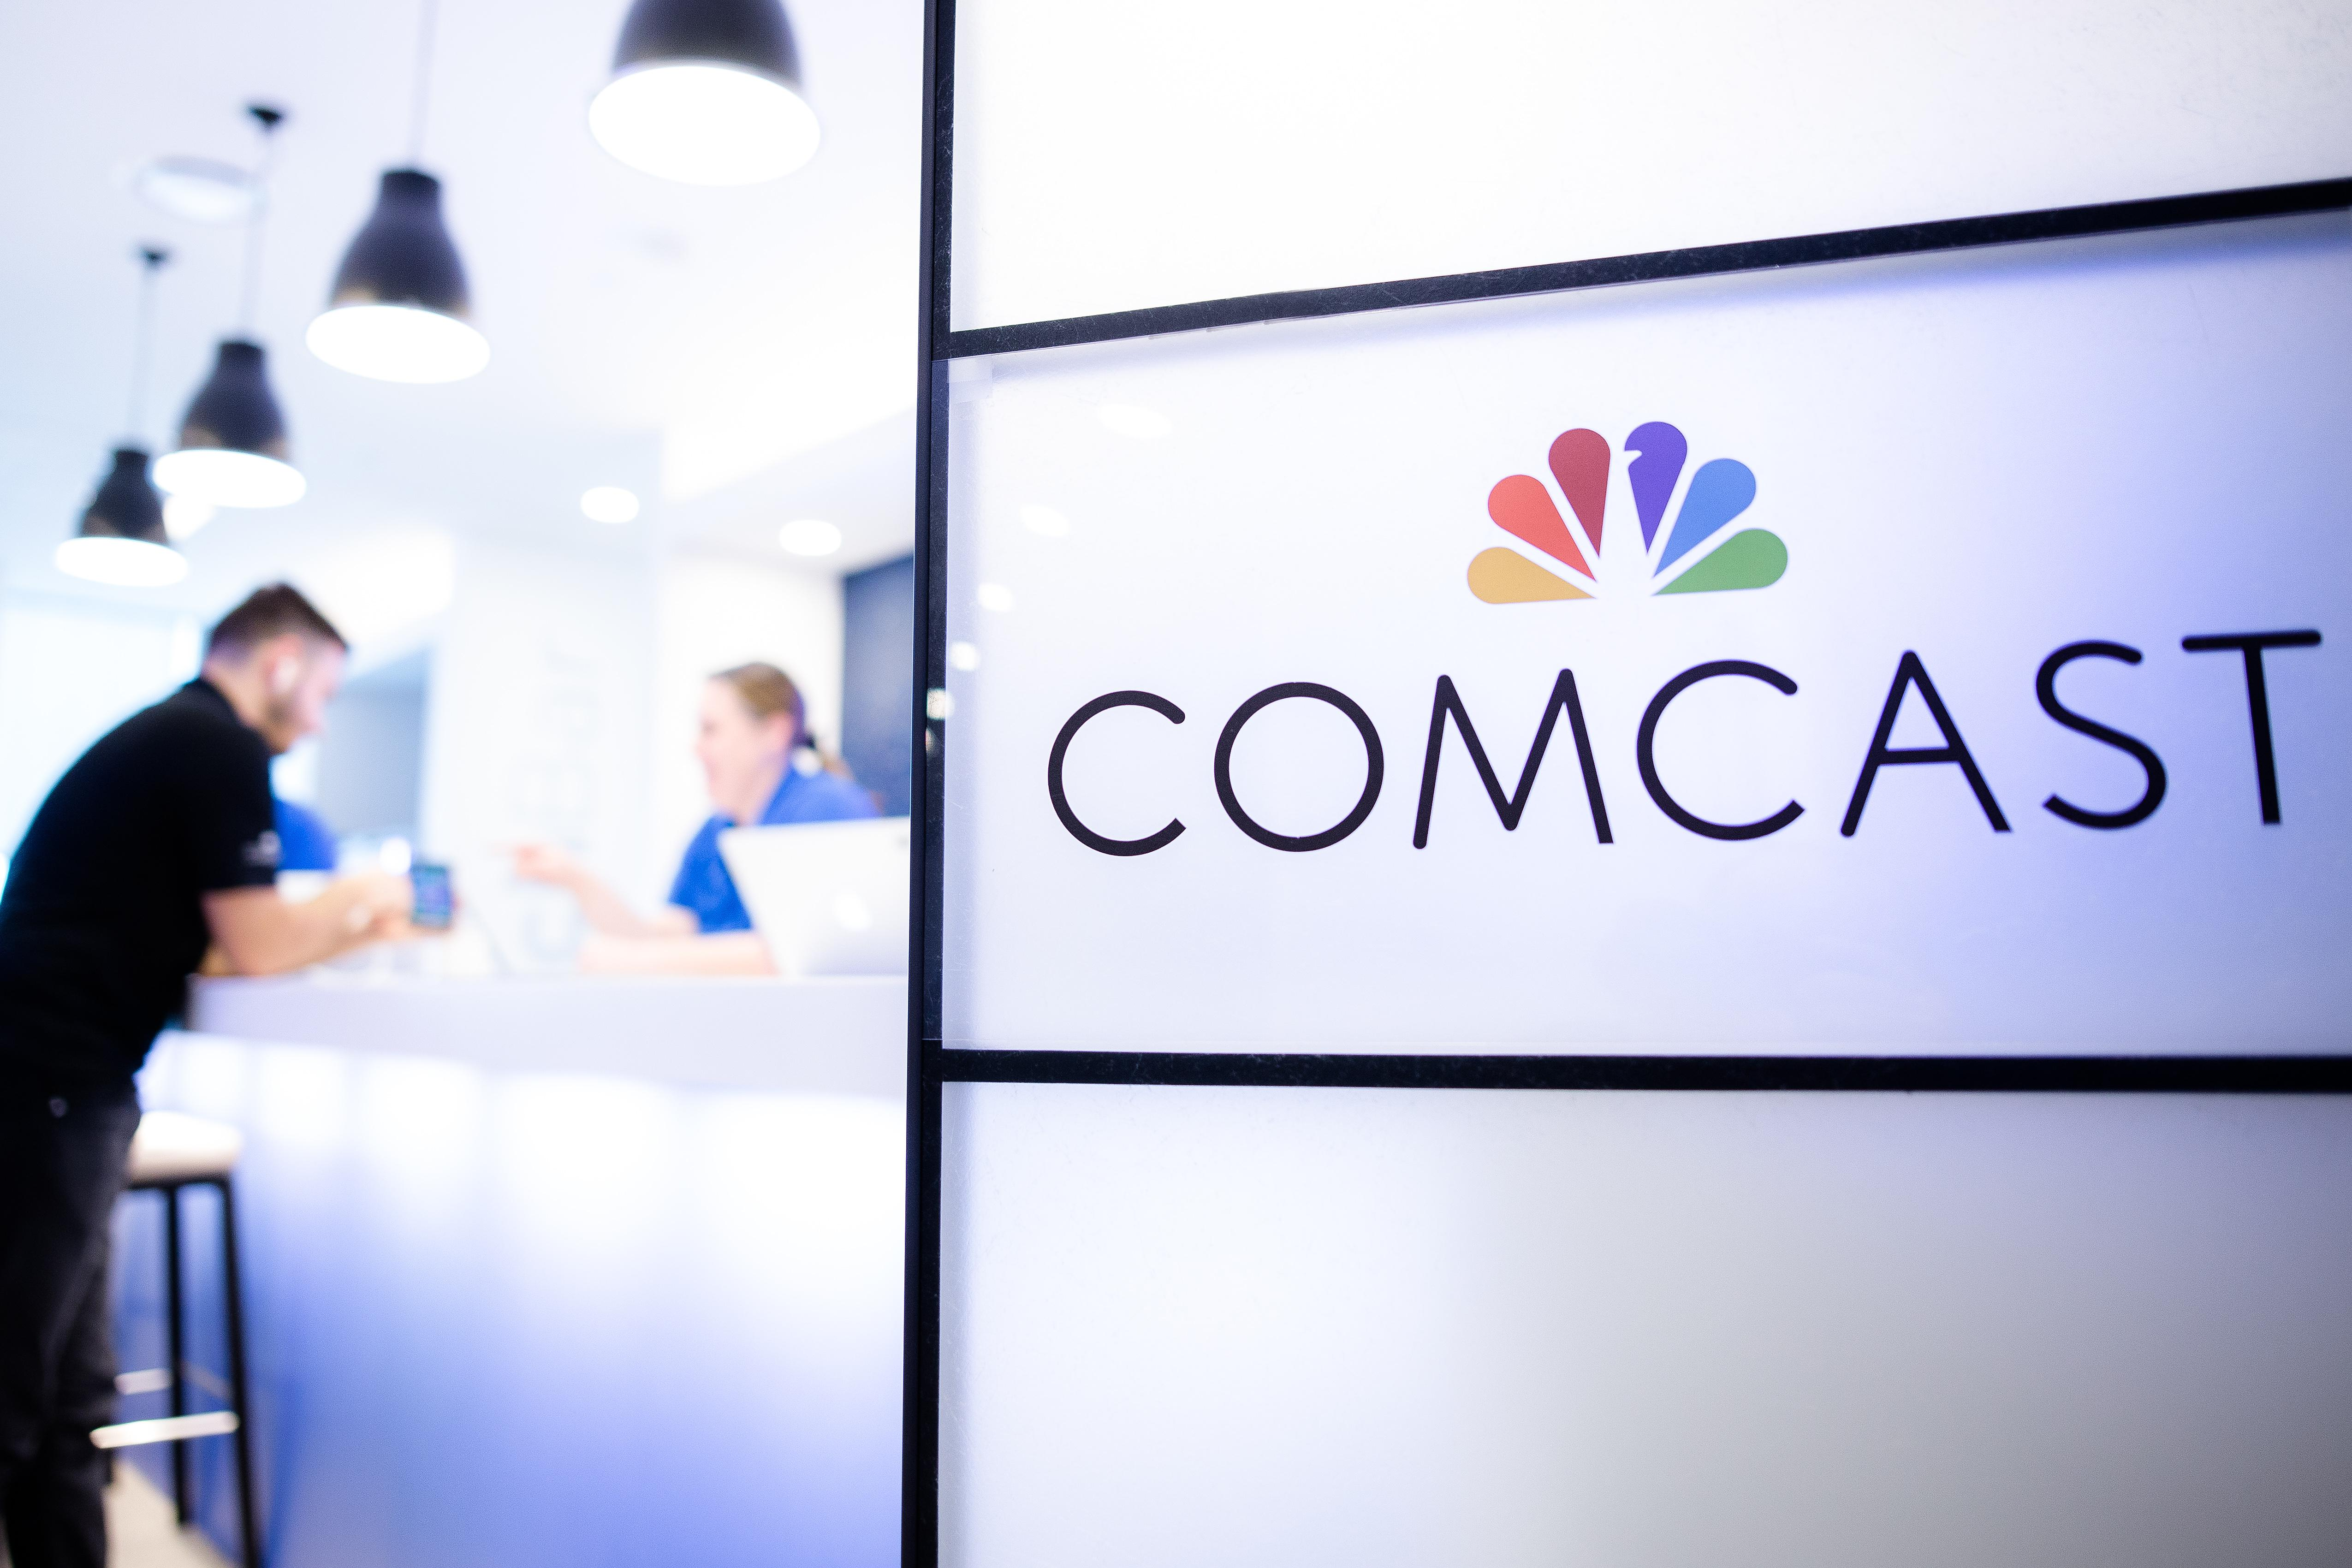 Comcast has acquired rights from cable network owners to offer their  channels nationwide, according to